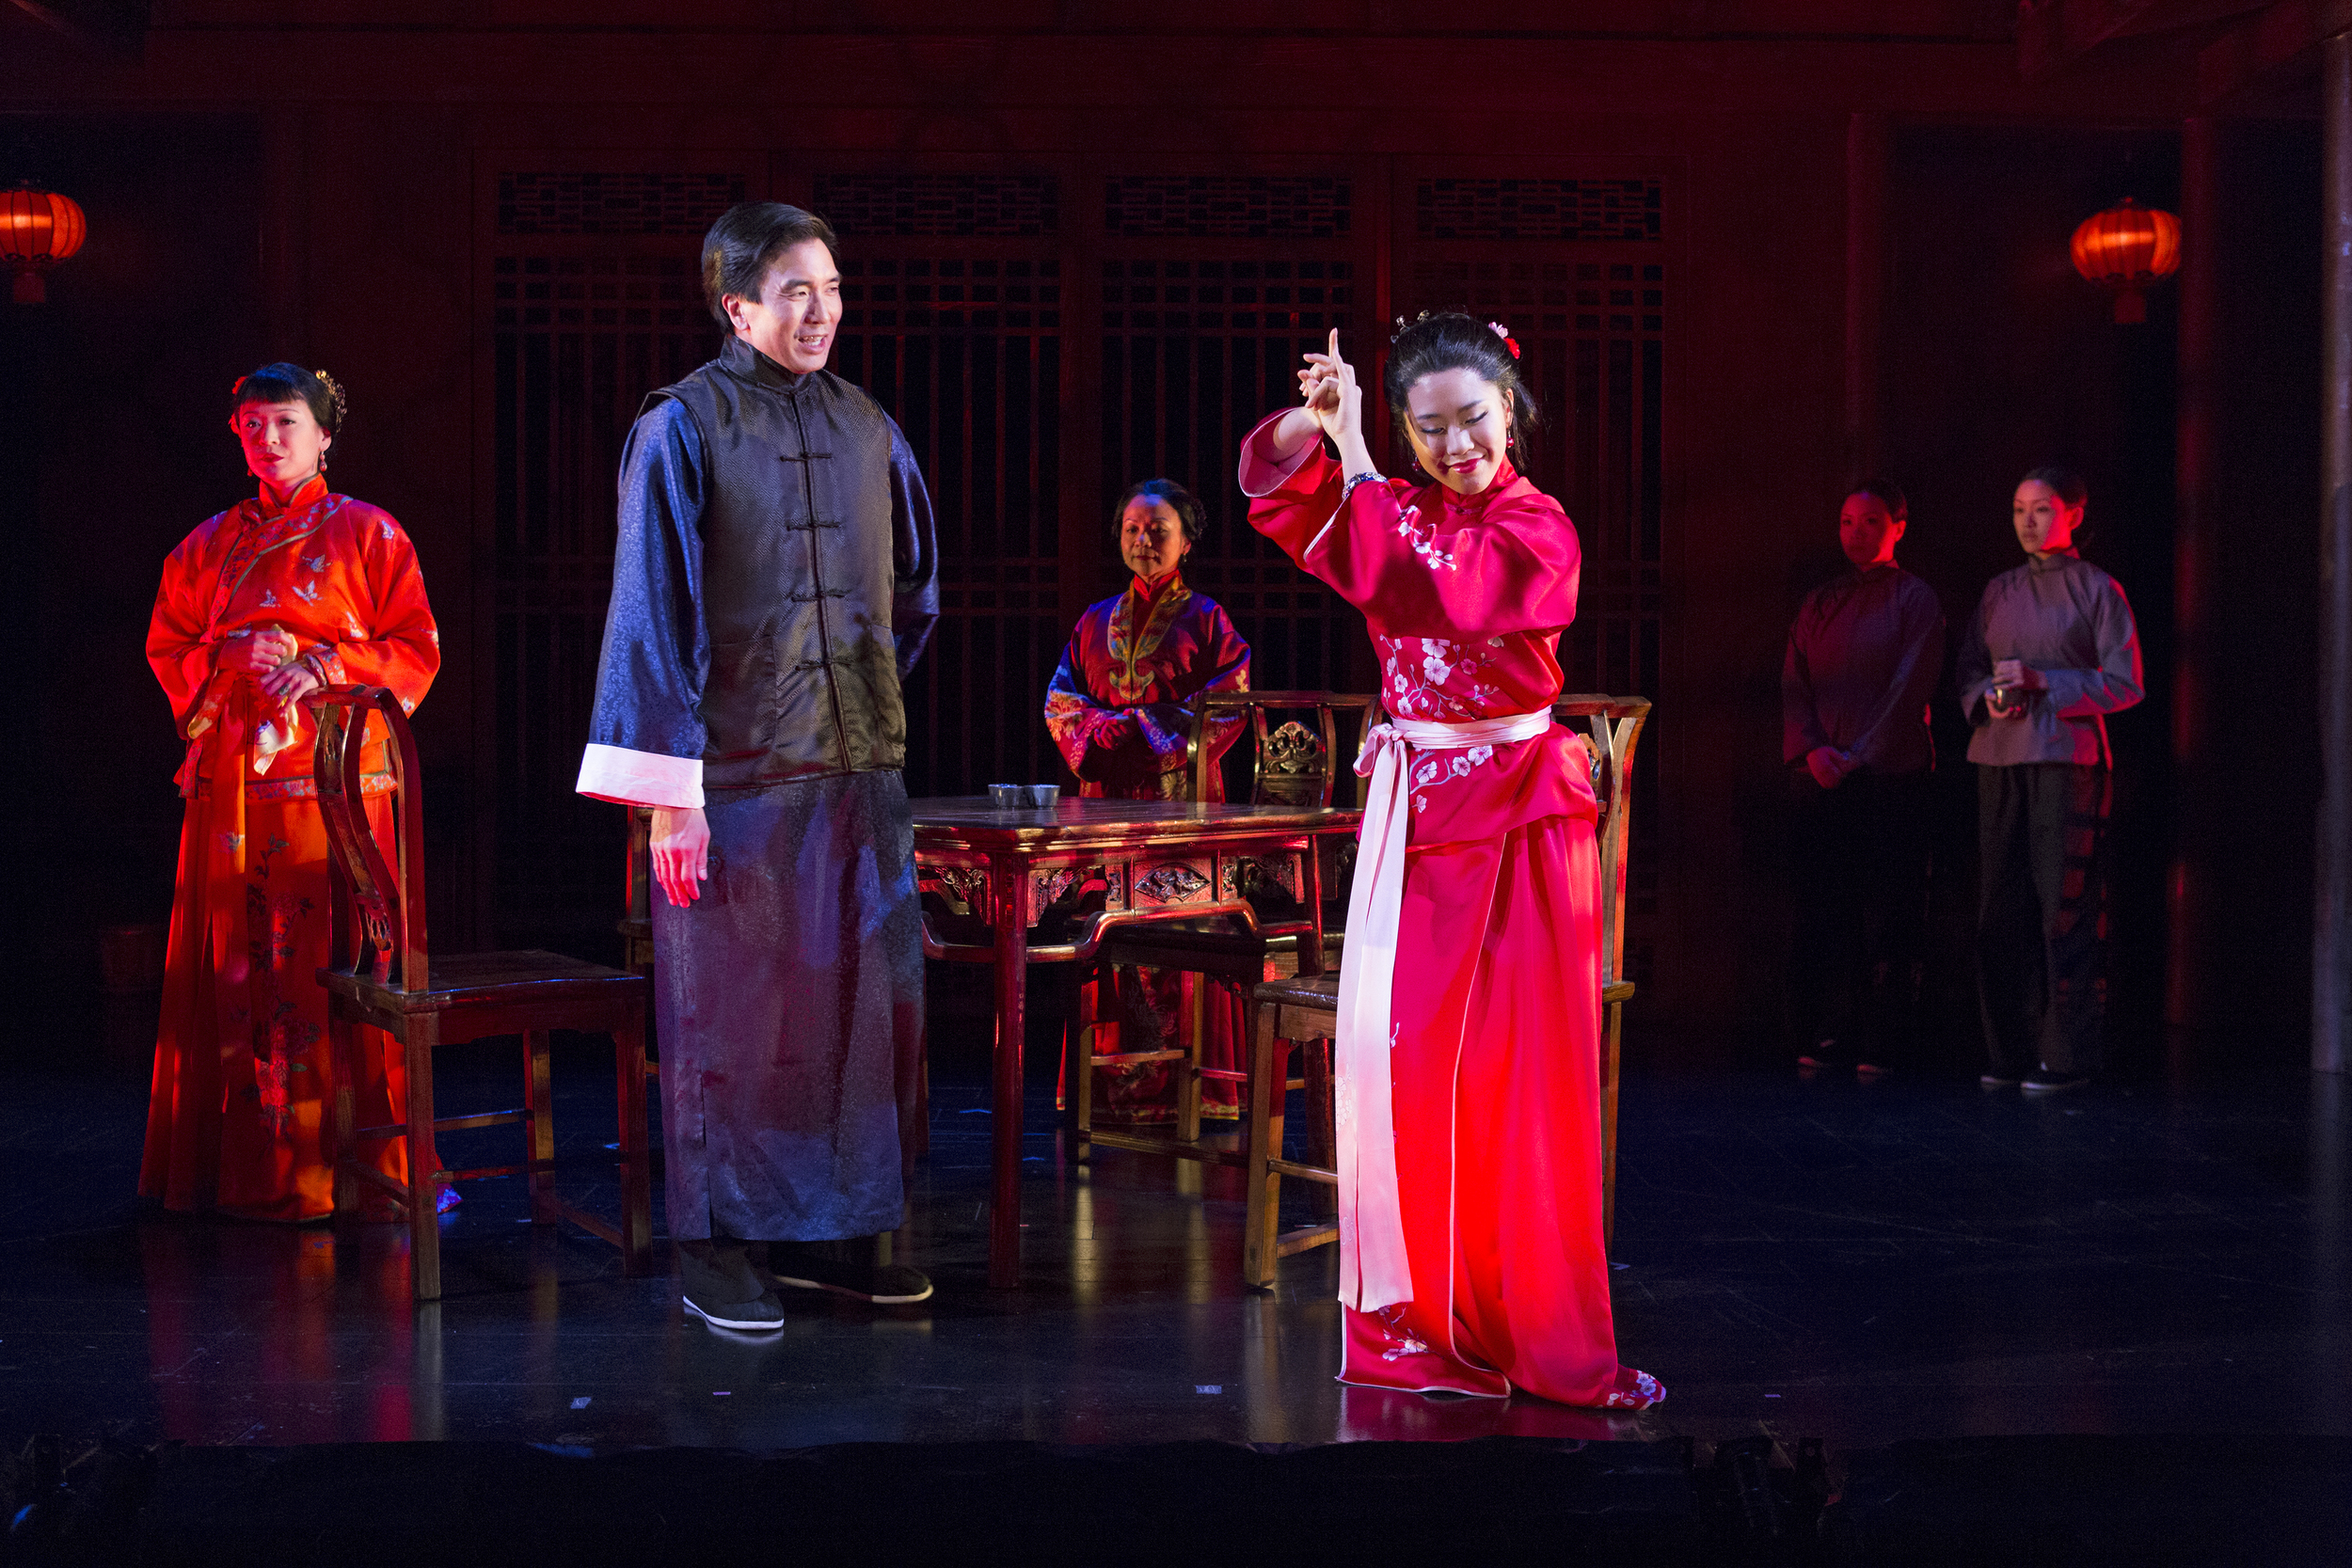 Jennifer Lim, Greg Watanabe, Julyana Soelistyo, Leslie Hu, Tina Chilip, and Nadia Gan. Photo by Richard Termin, Signature Theater Production, 2012